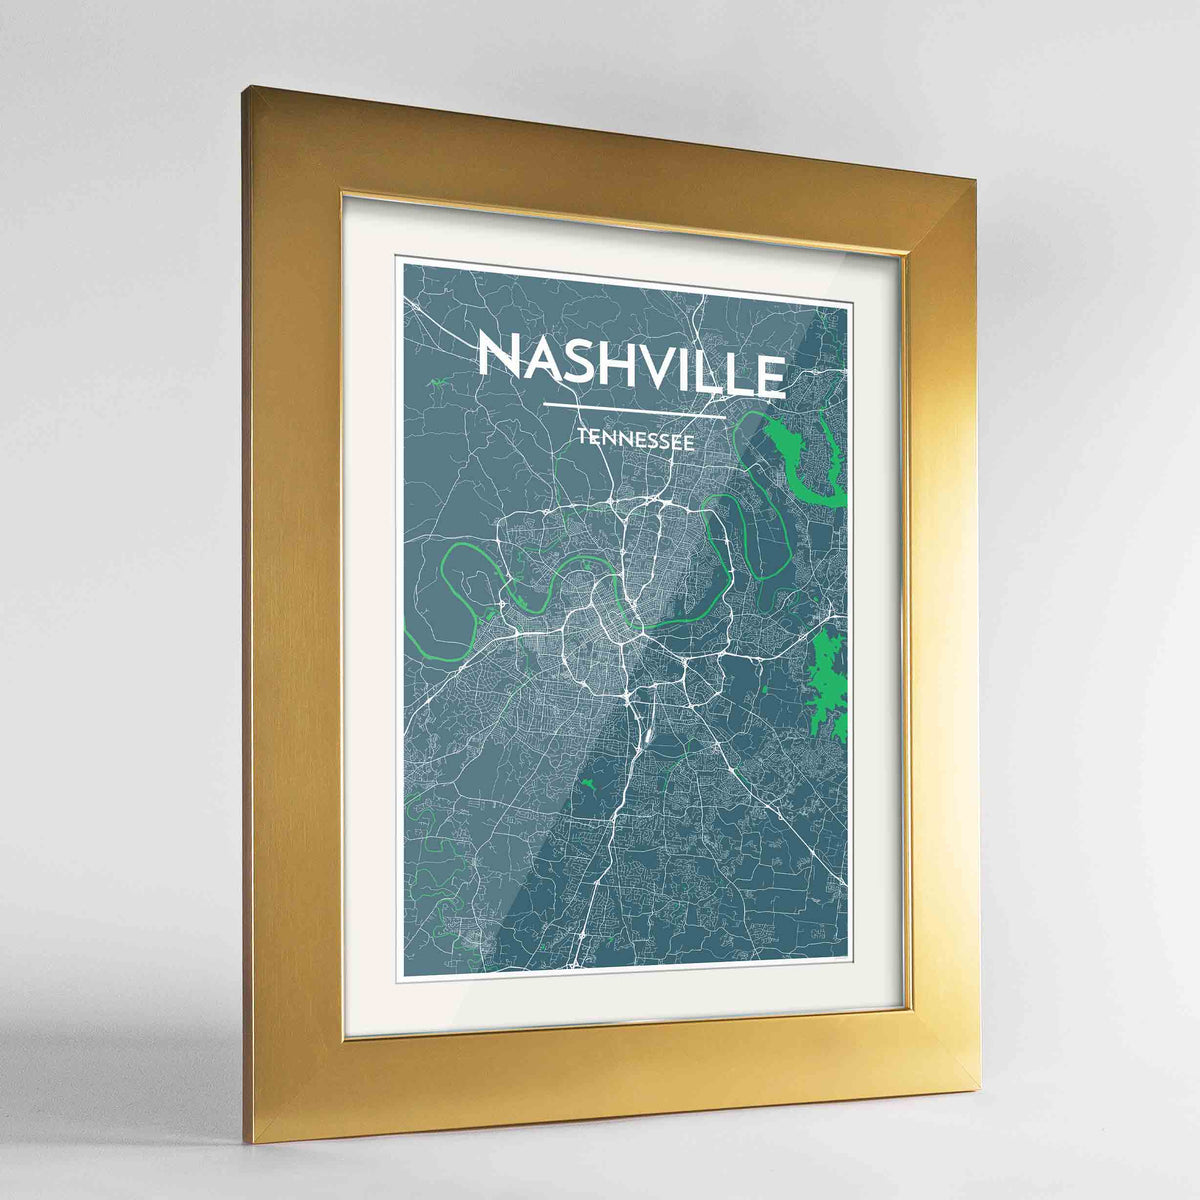 "Framed Nashville Map Art Print 24x36"" Gold frame Point Two Design Group"